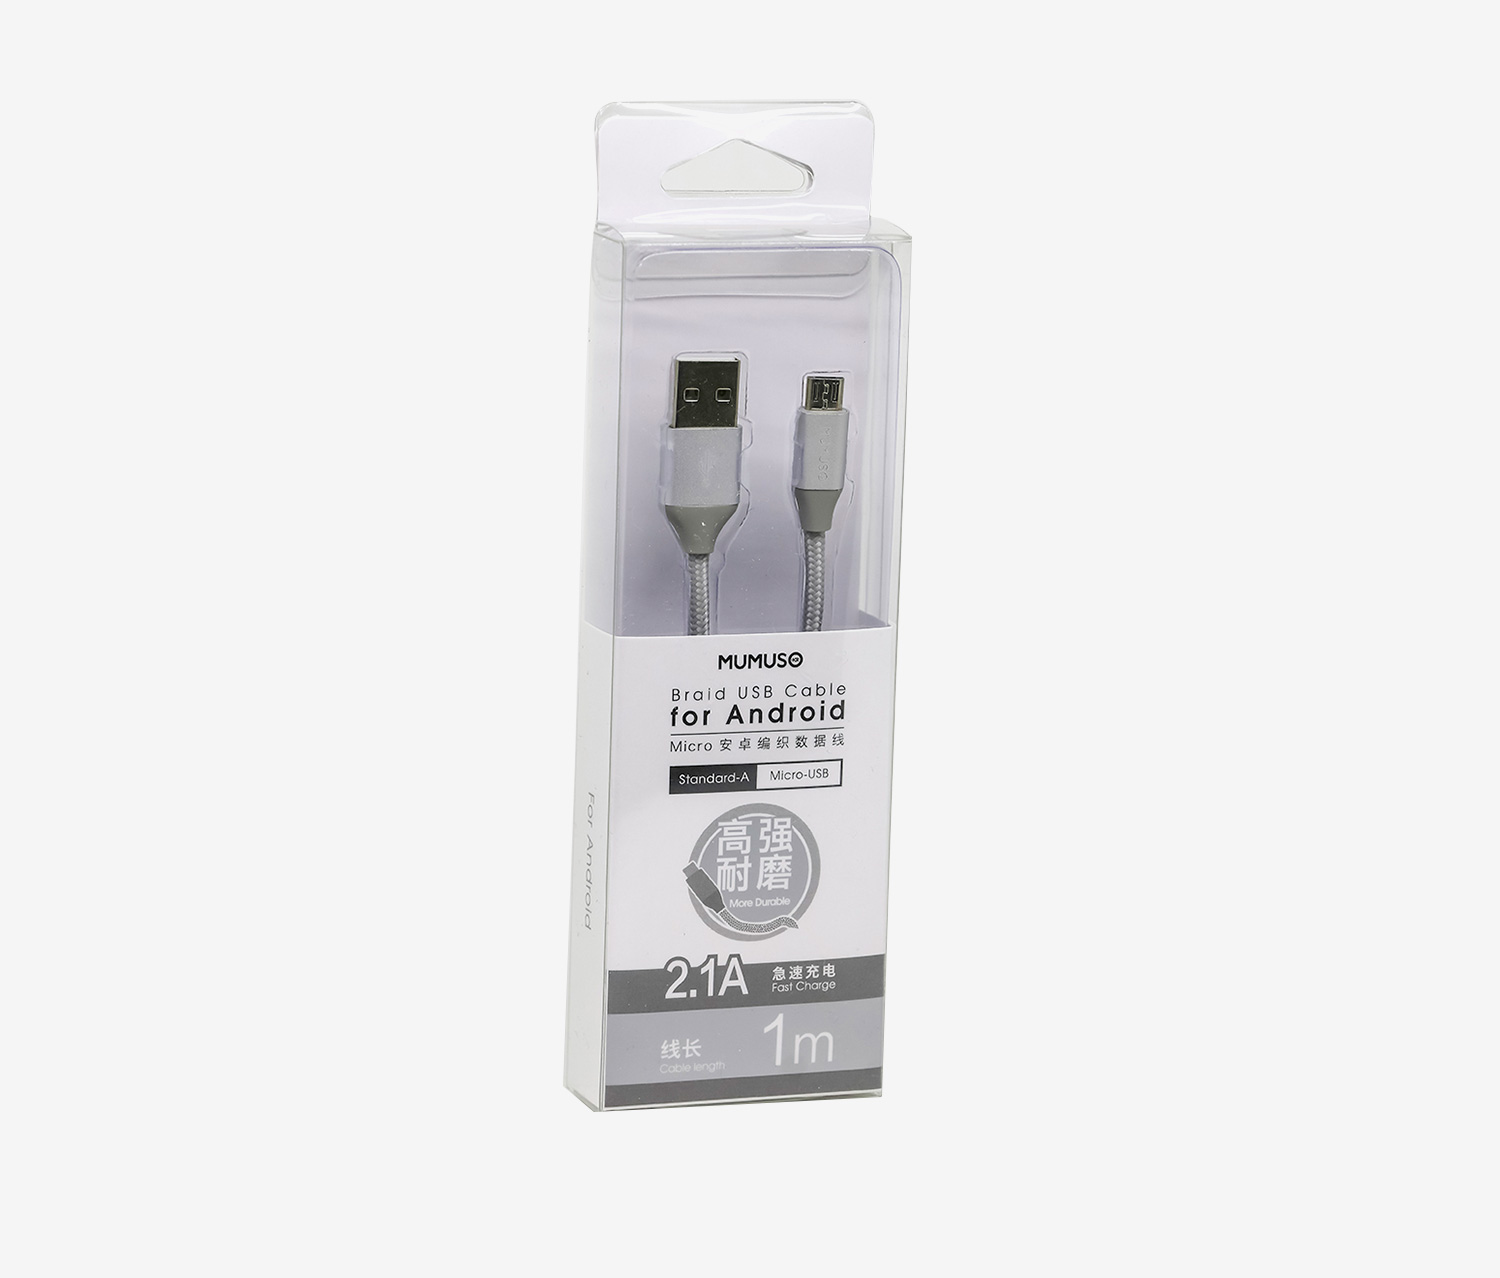 Braid Usb Cable For Android-2.1A, Silver